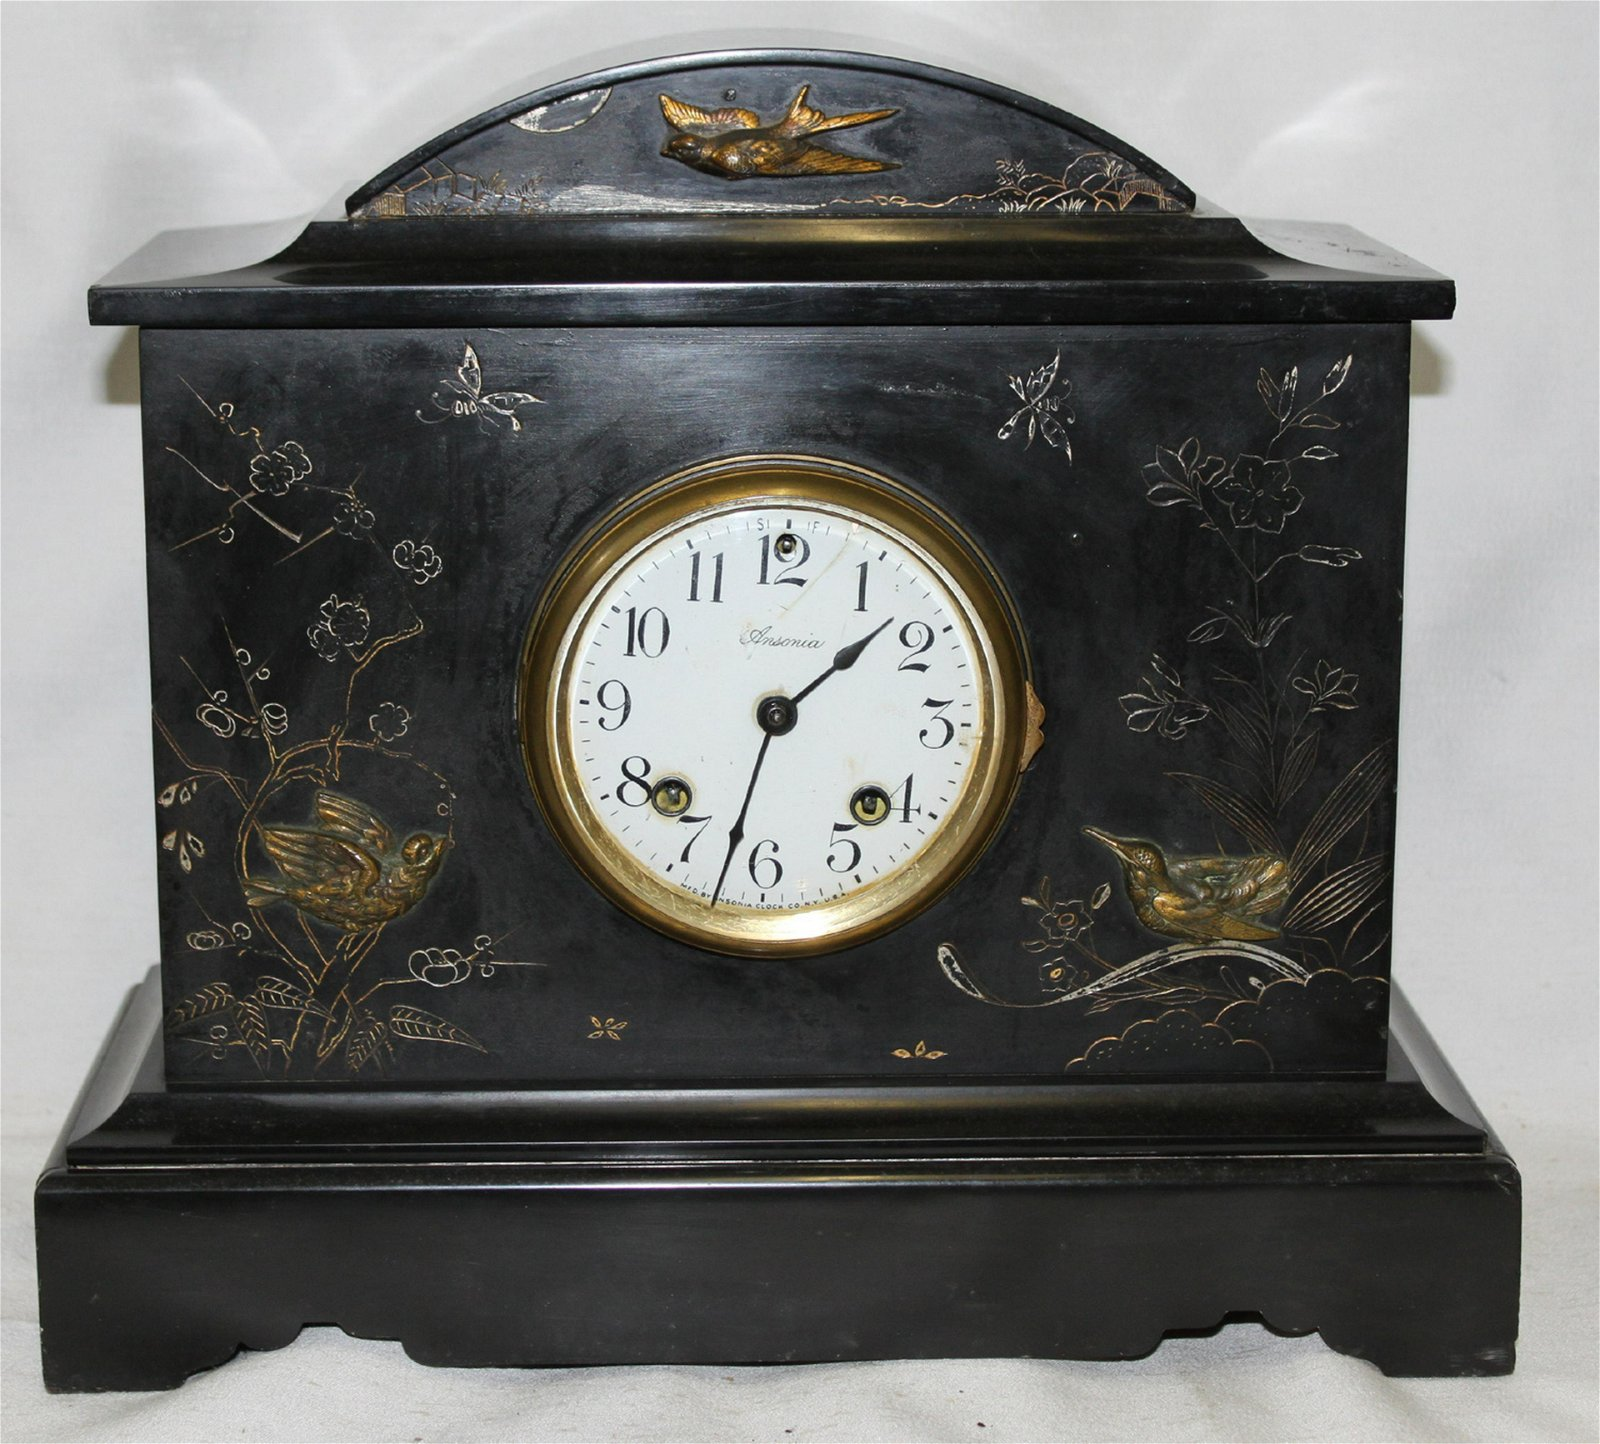 19 C FRENCH INCISED MARBLE CLOCK W/ ANSONIA MOVEMENT